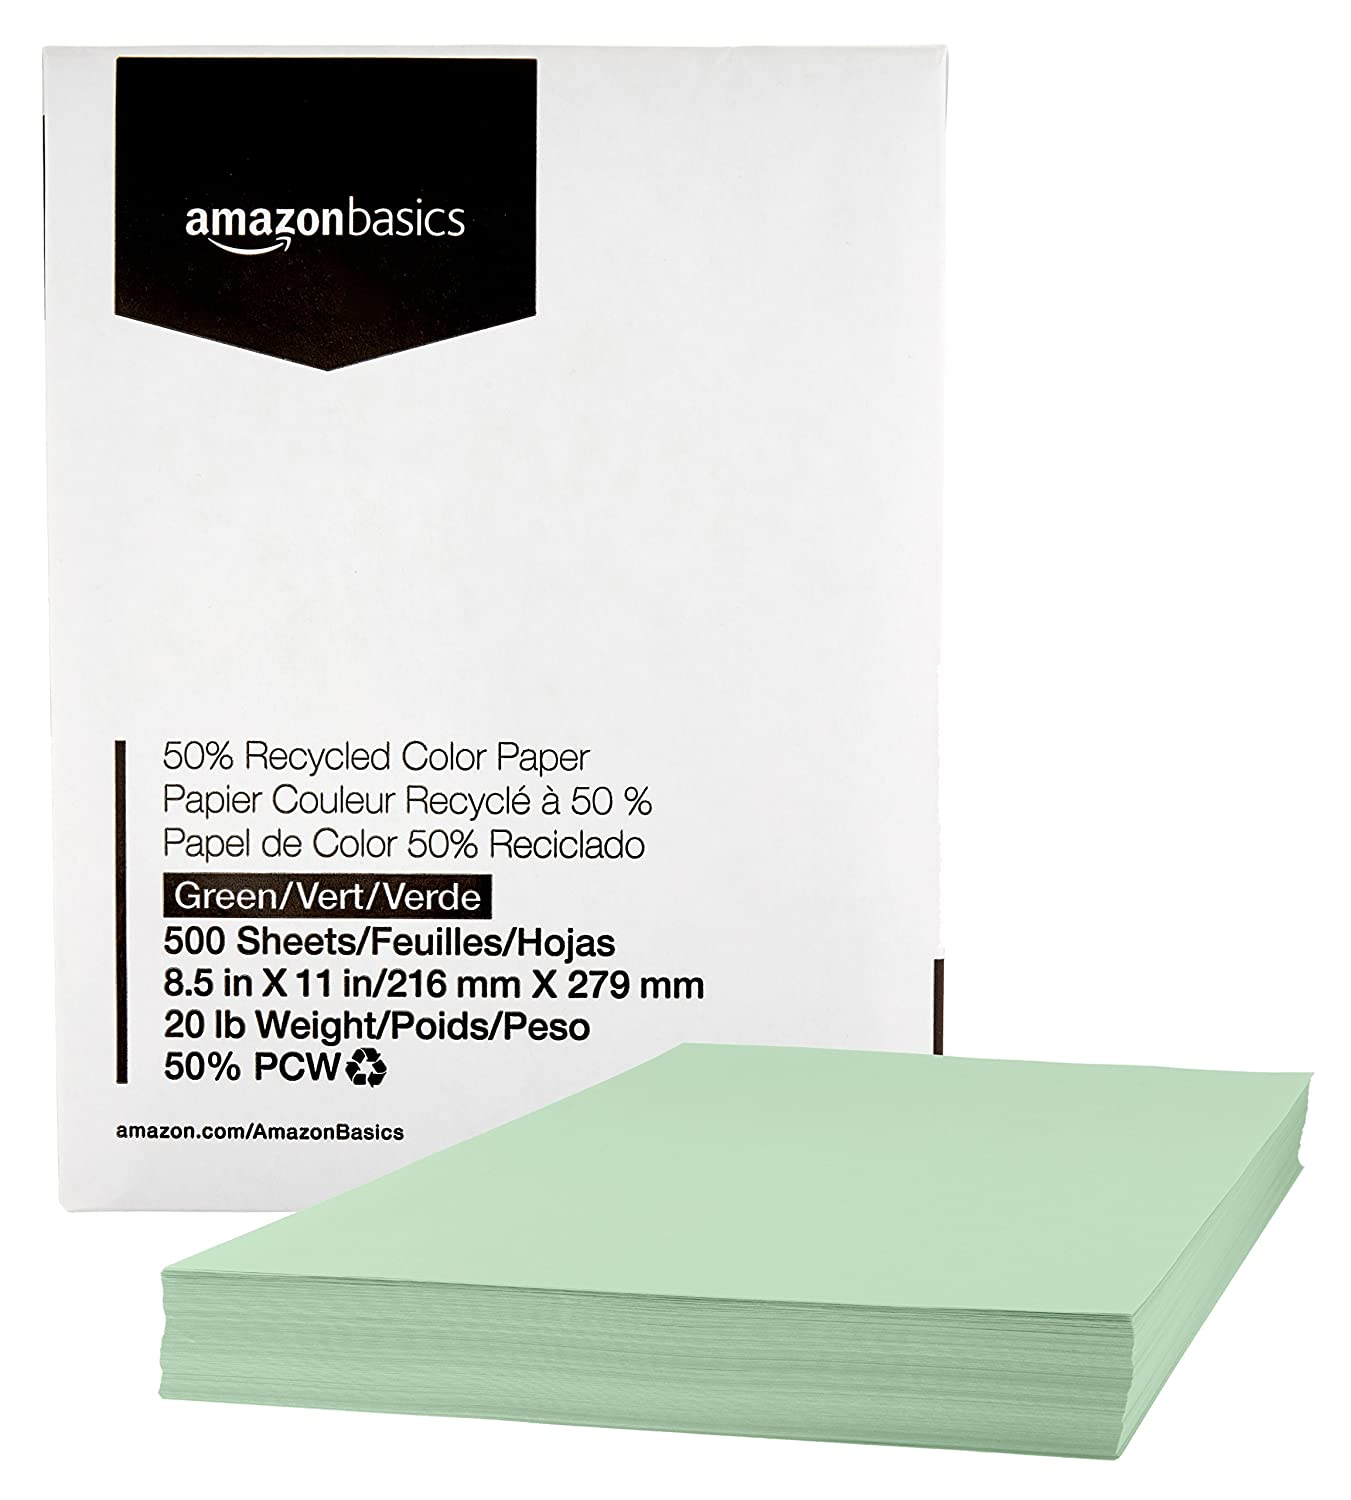 AmazonBasics 50% Recycled Color Paper - Green, 8.5 x 11 Inches, 20 lbs, 1 Ream (500 Sheets)